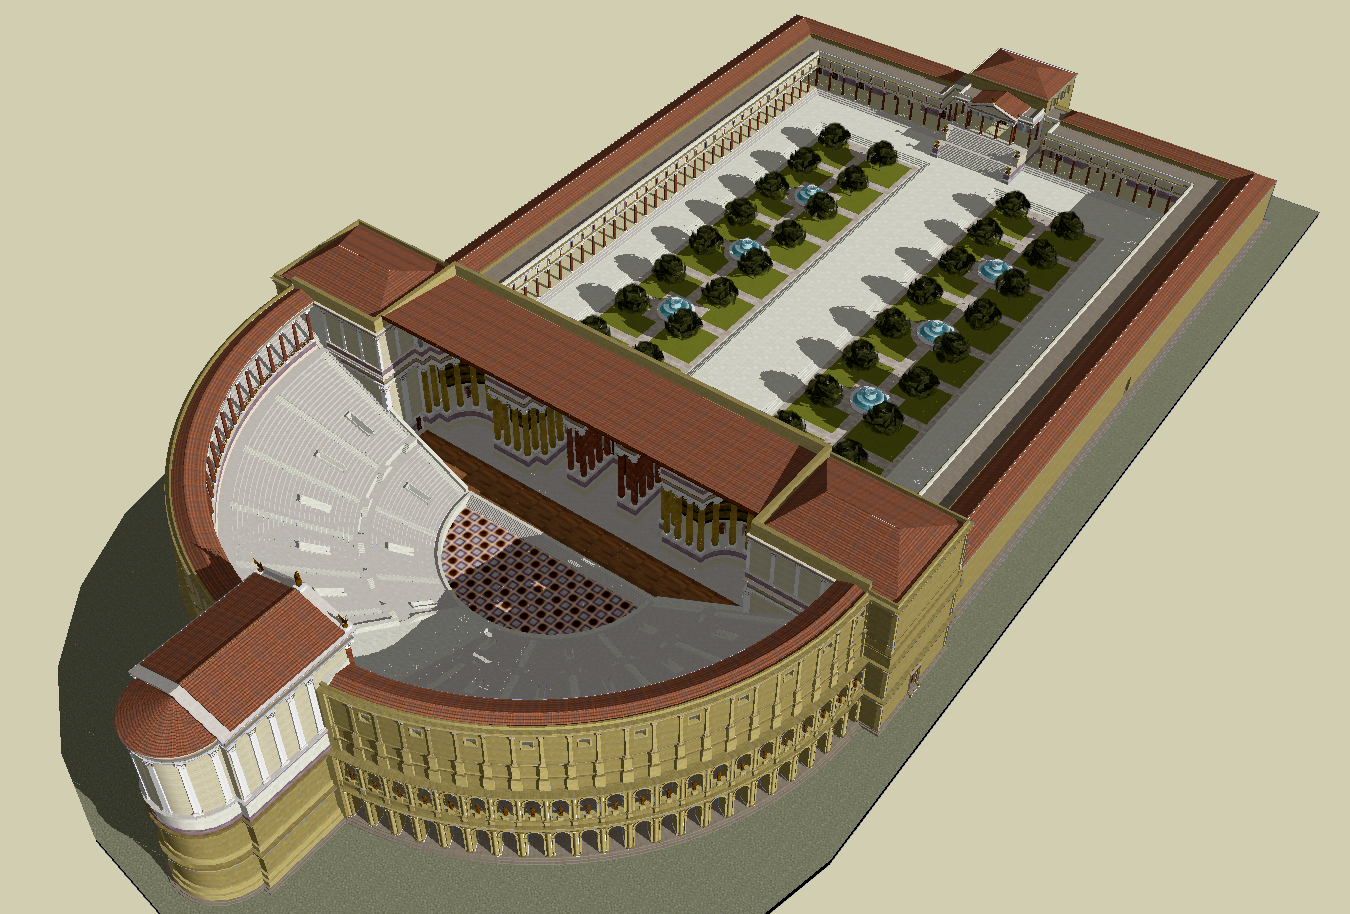 An image of the Theatre of Pompey